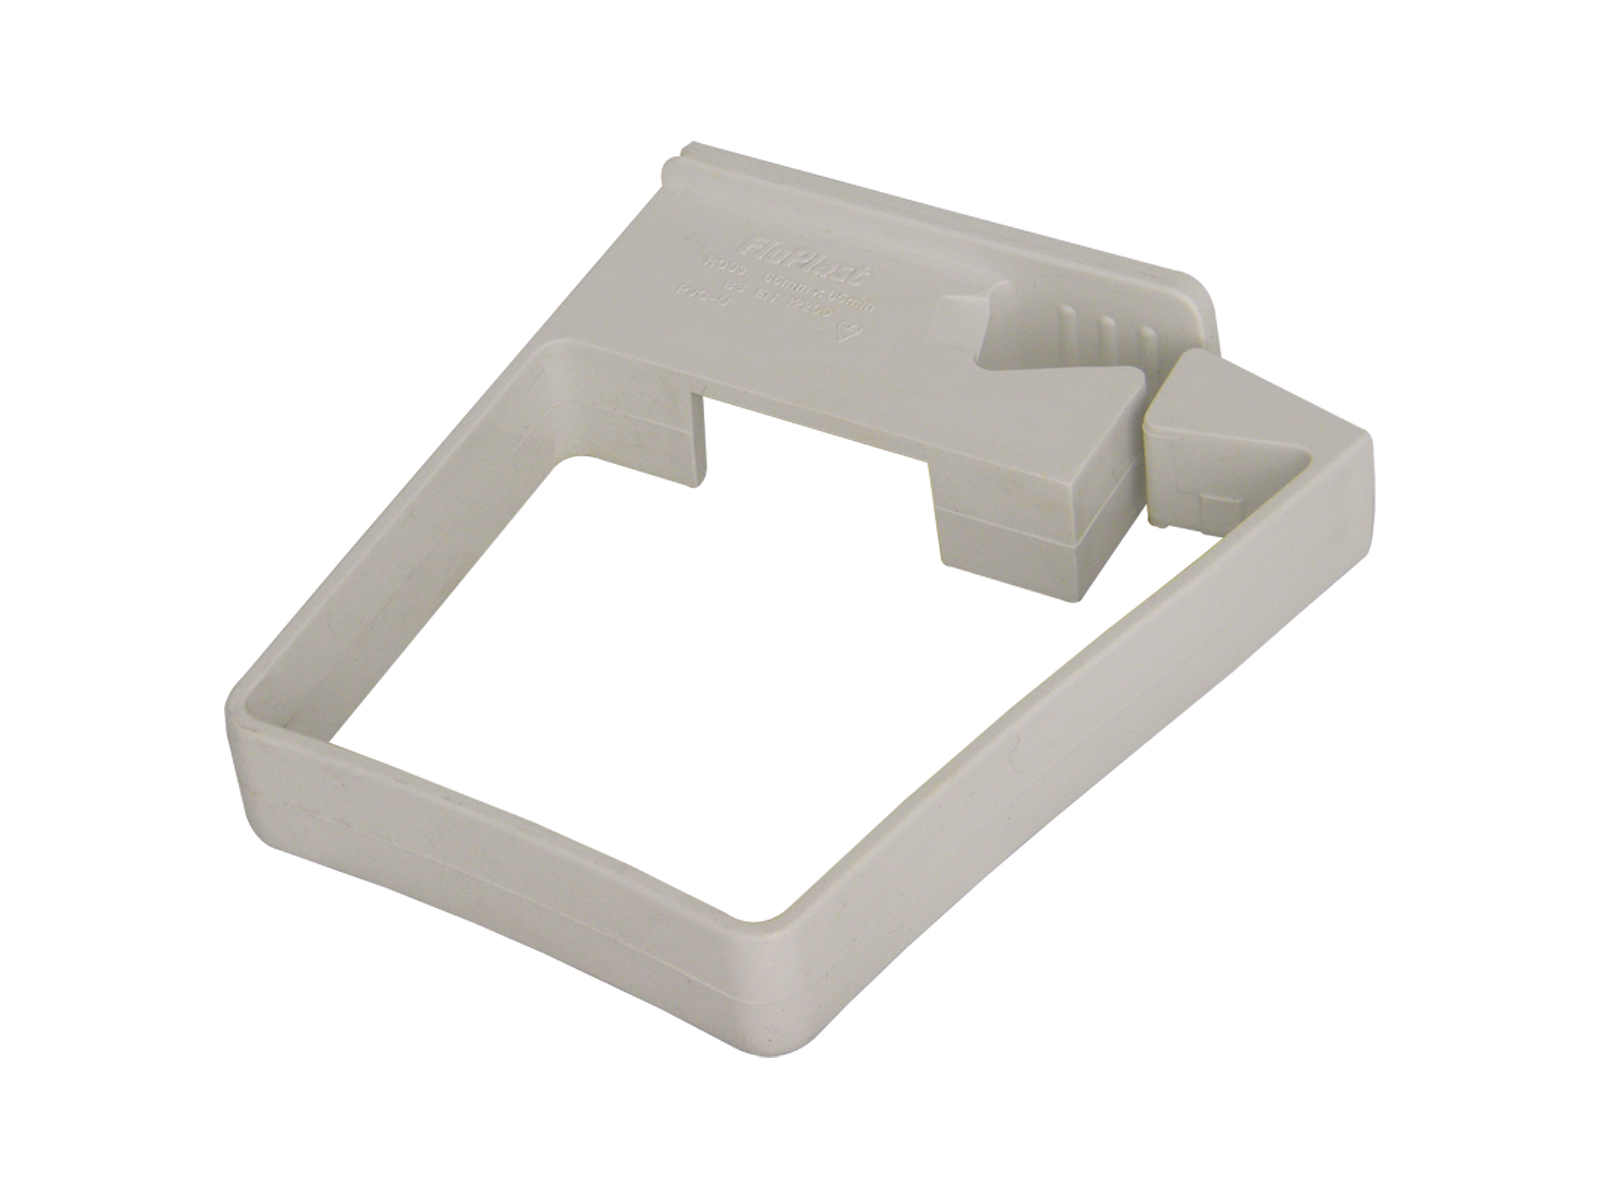 FLOPLAST RCS3WH 65MM SQUARE DOWNPIPE - SINGLE FIX PIPE CLIP - WHITE